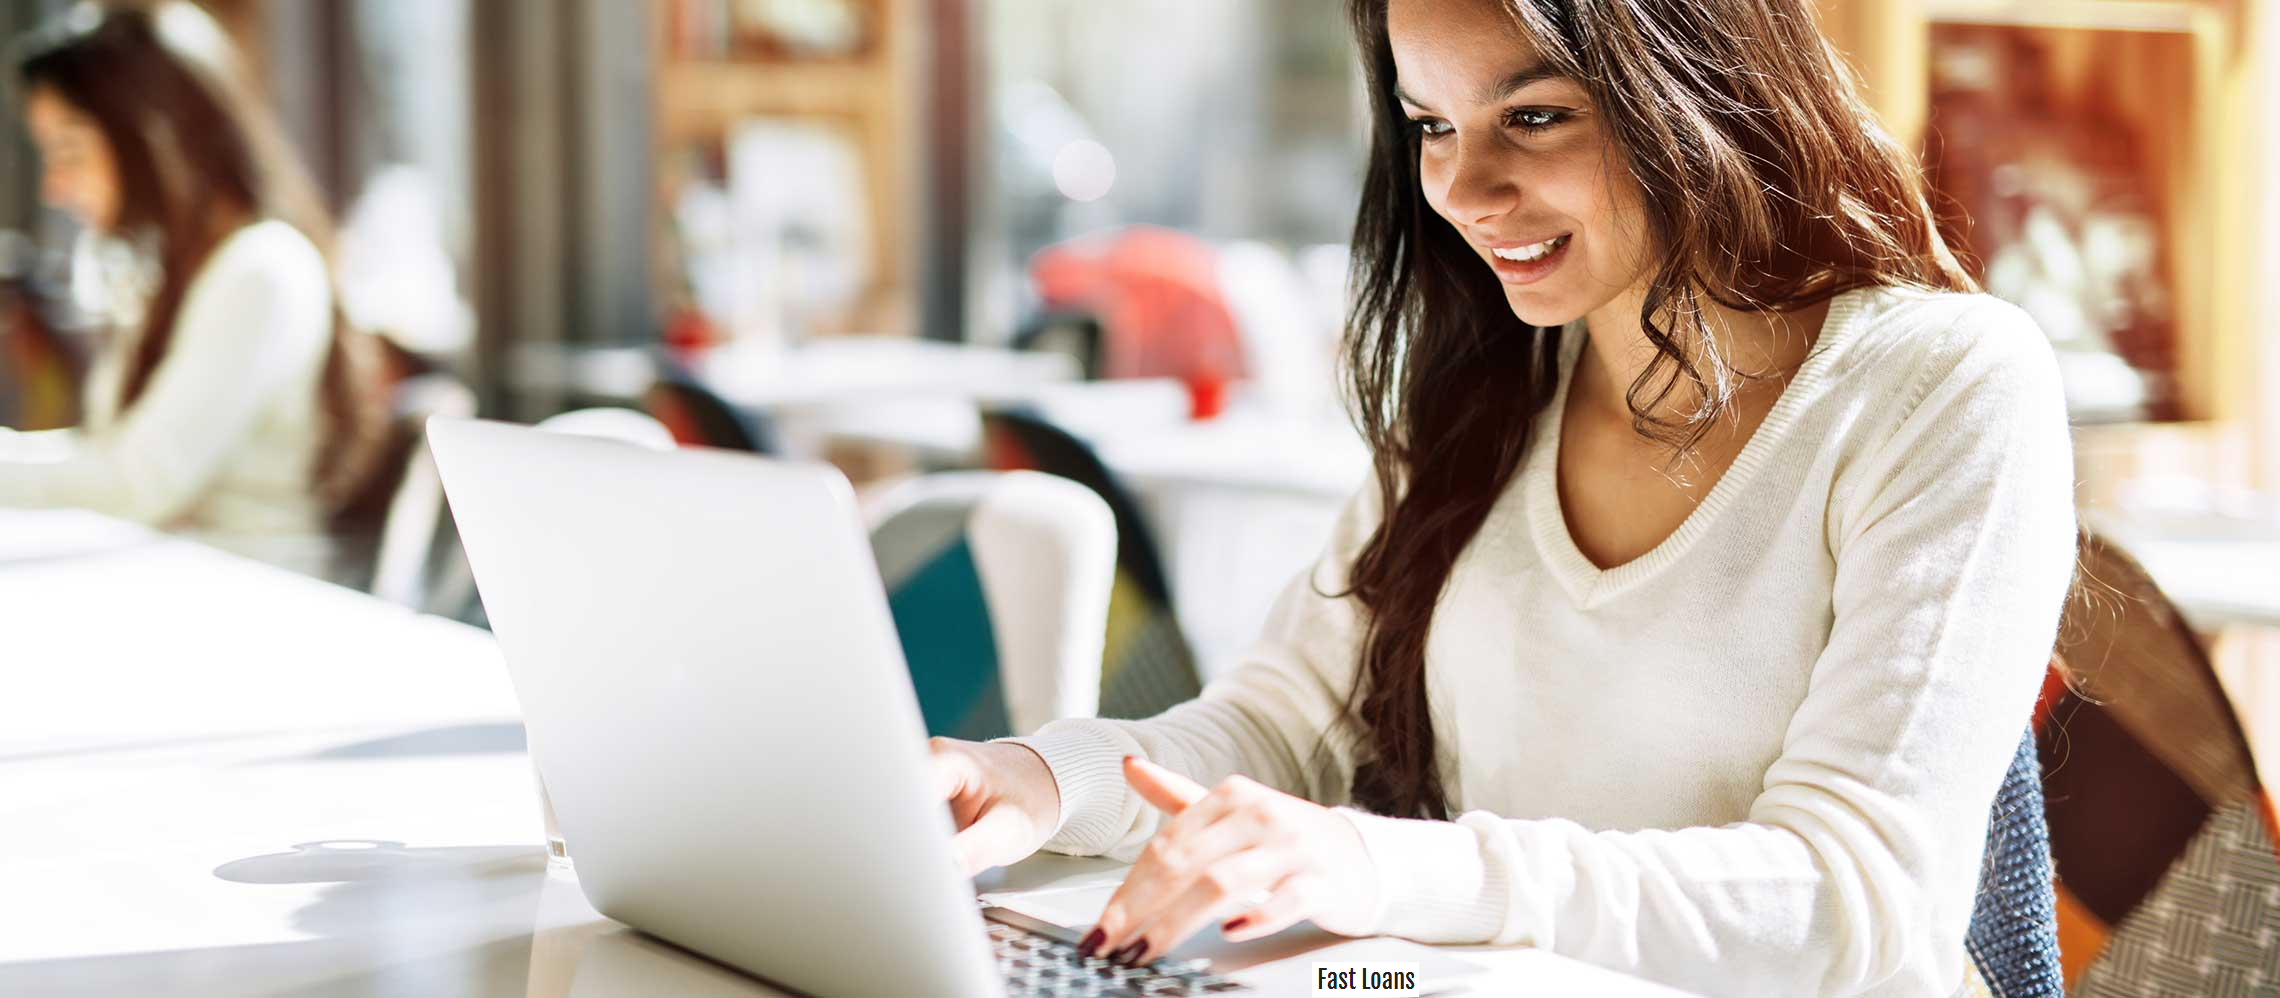 Fast Loans Take Care of Surprising Cash Problems On Time